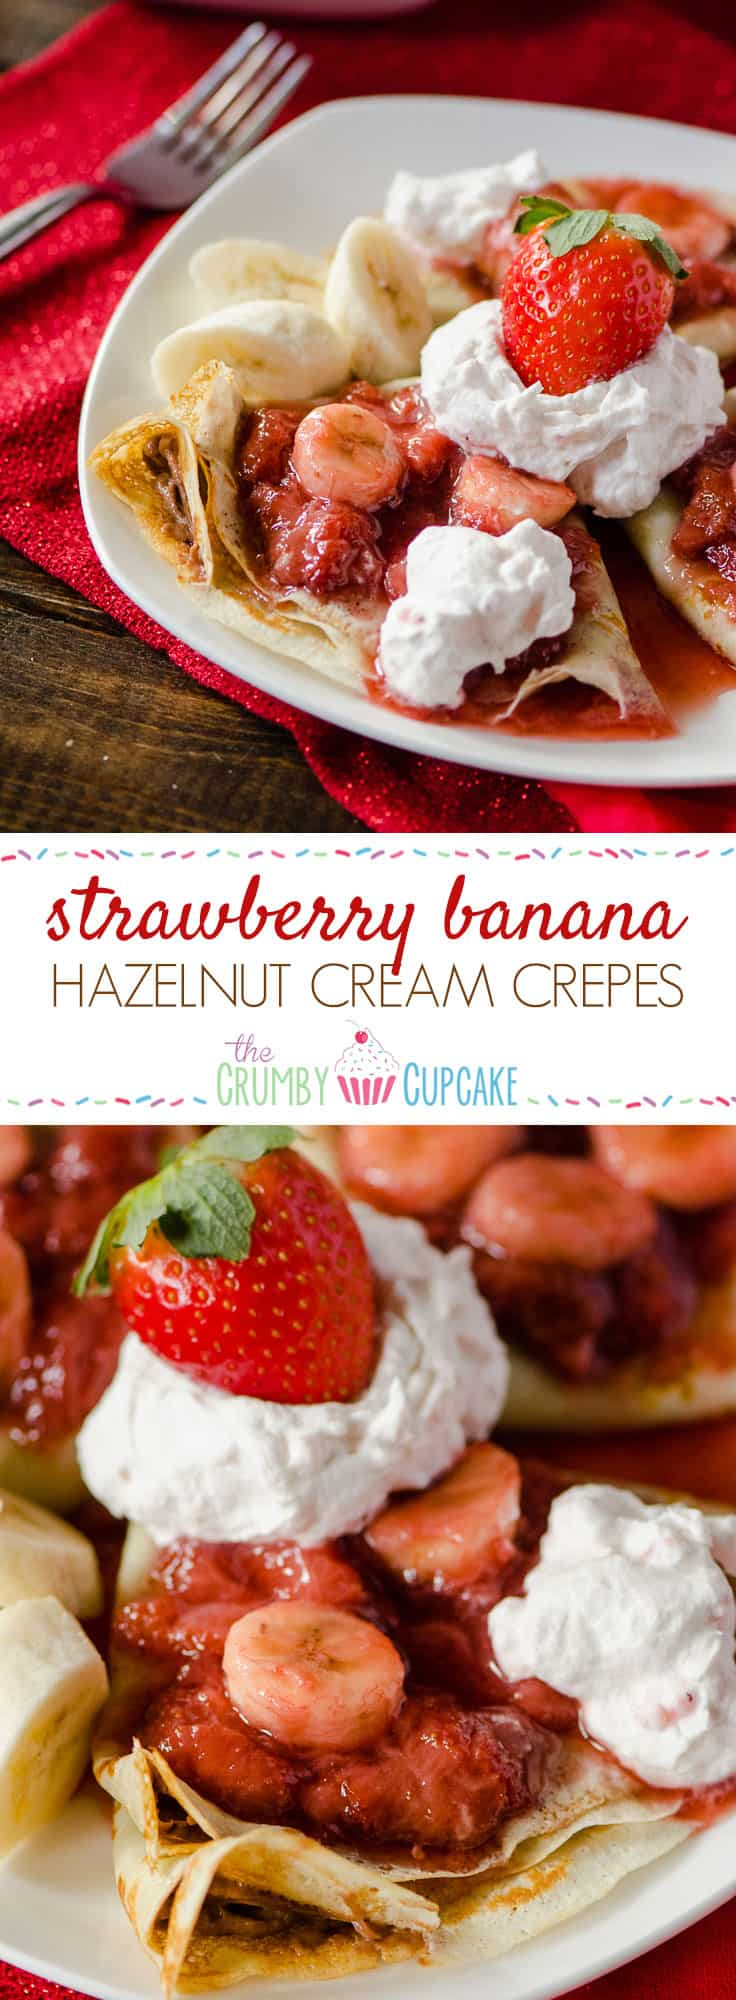 Strawberry Banana Hazelnut Cream Crepes   A beautiful breakfast treat for your sweetheart! Florida strawberries, fresh bananas, and hazelnut spread, rolled up in thin, delicious crepes, topped off with homemade strawberry whipped cream!